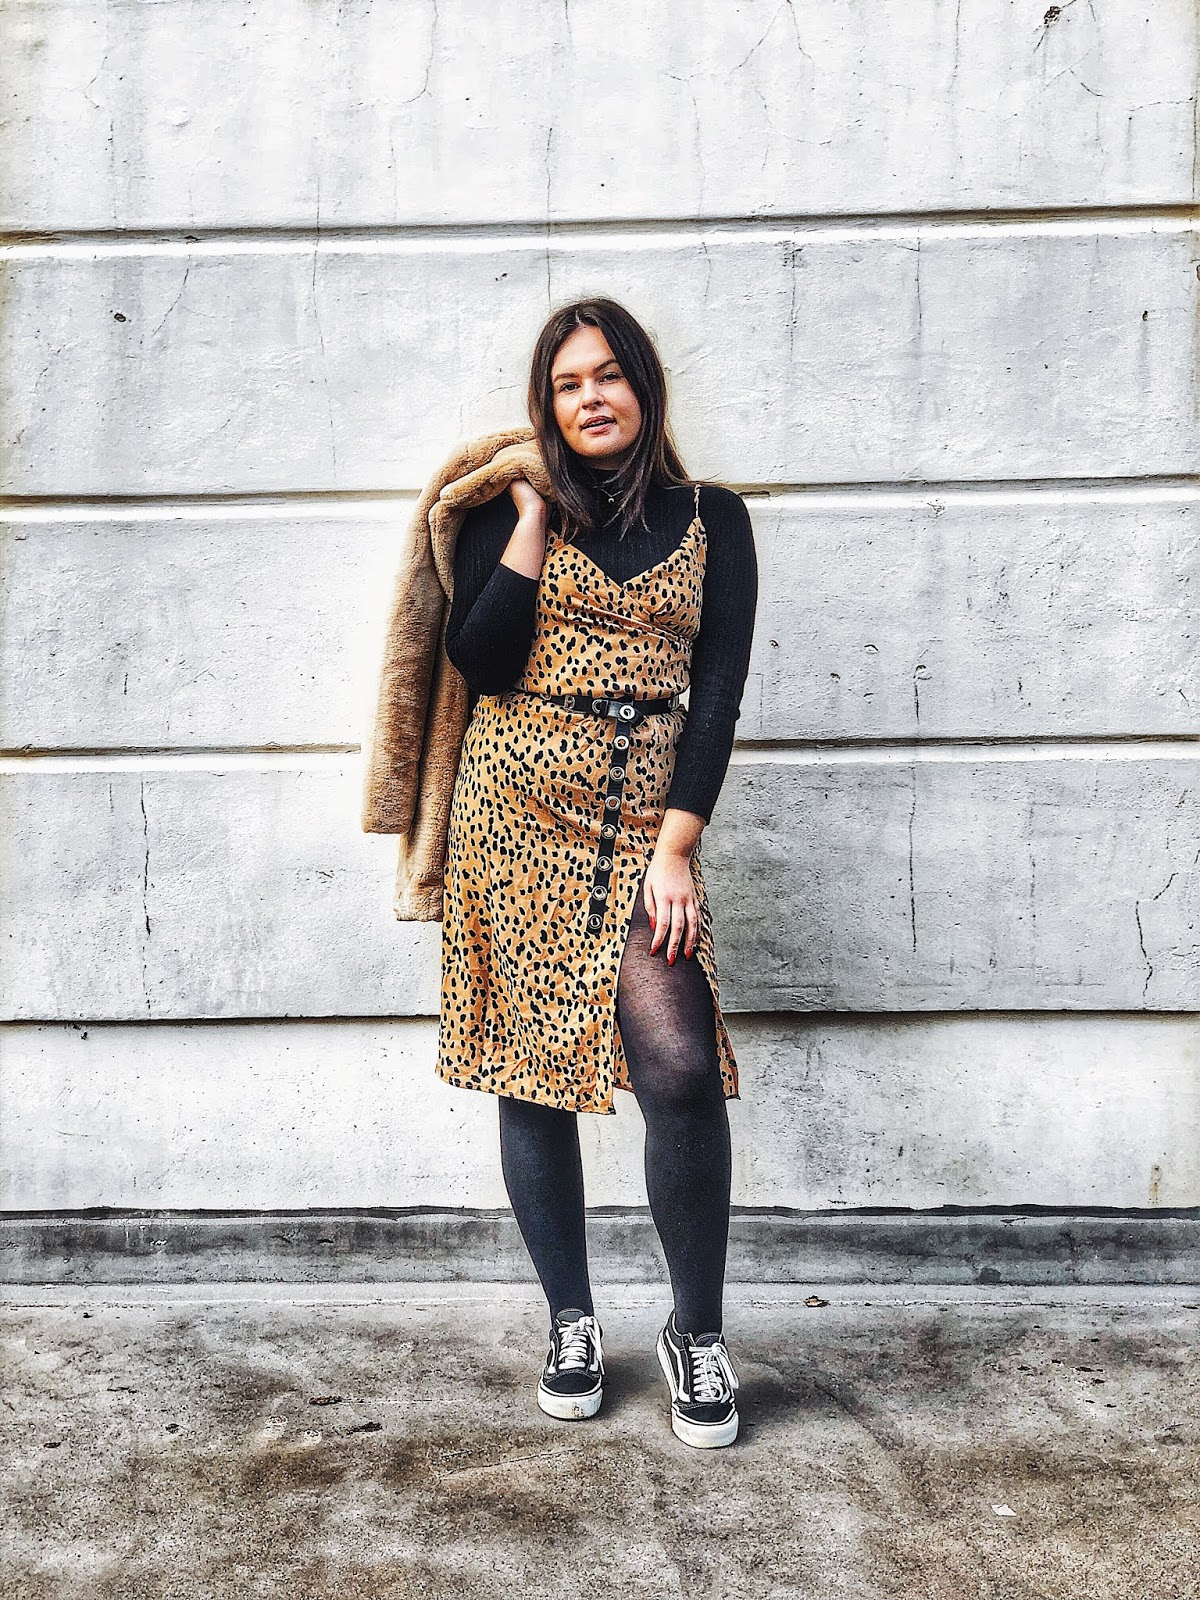 naomi genes x boohoo, animal print wrap dress boohoo, boohoo style, uk fashion blogger, how blogging has changed, blogging in 2012, how to wear leopard print